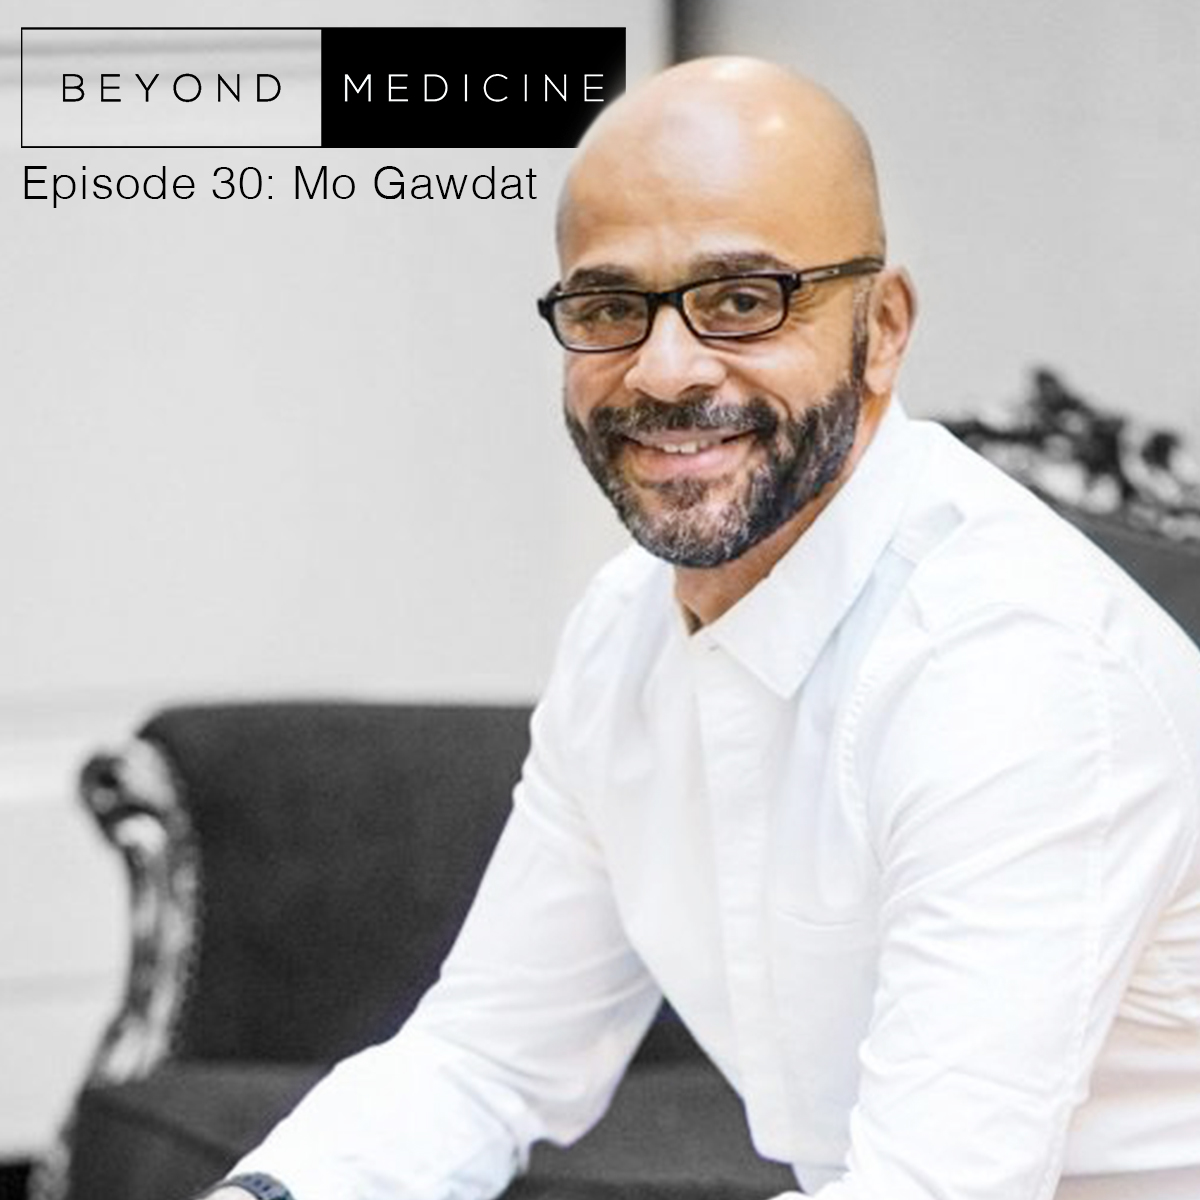 Solving For Happy - Mo Gawdat is the former Chief Business Officer at Google's [X]. In the last ten years he has made happiness his primary topic of research, diving deeply into literature and conversing on the topic with thousands of people in more than a hundred countries. He has cofounded more than twenty businesses. In 2014, following the tragic loss of his son, Ali, Mo found new purpose and wrote the international best seller, Solve for Happy.